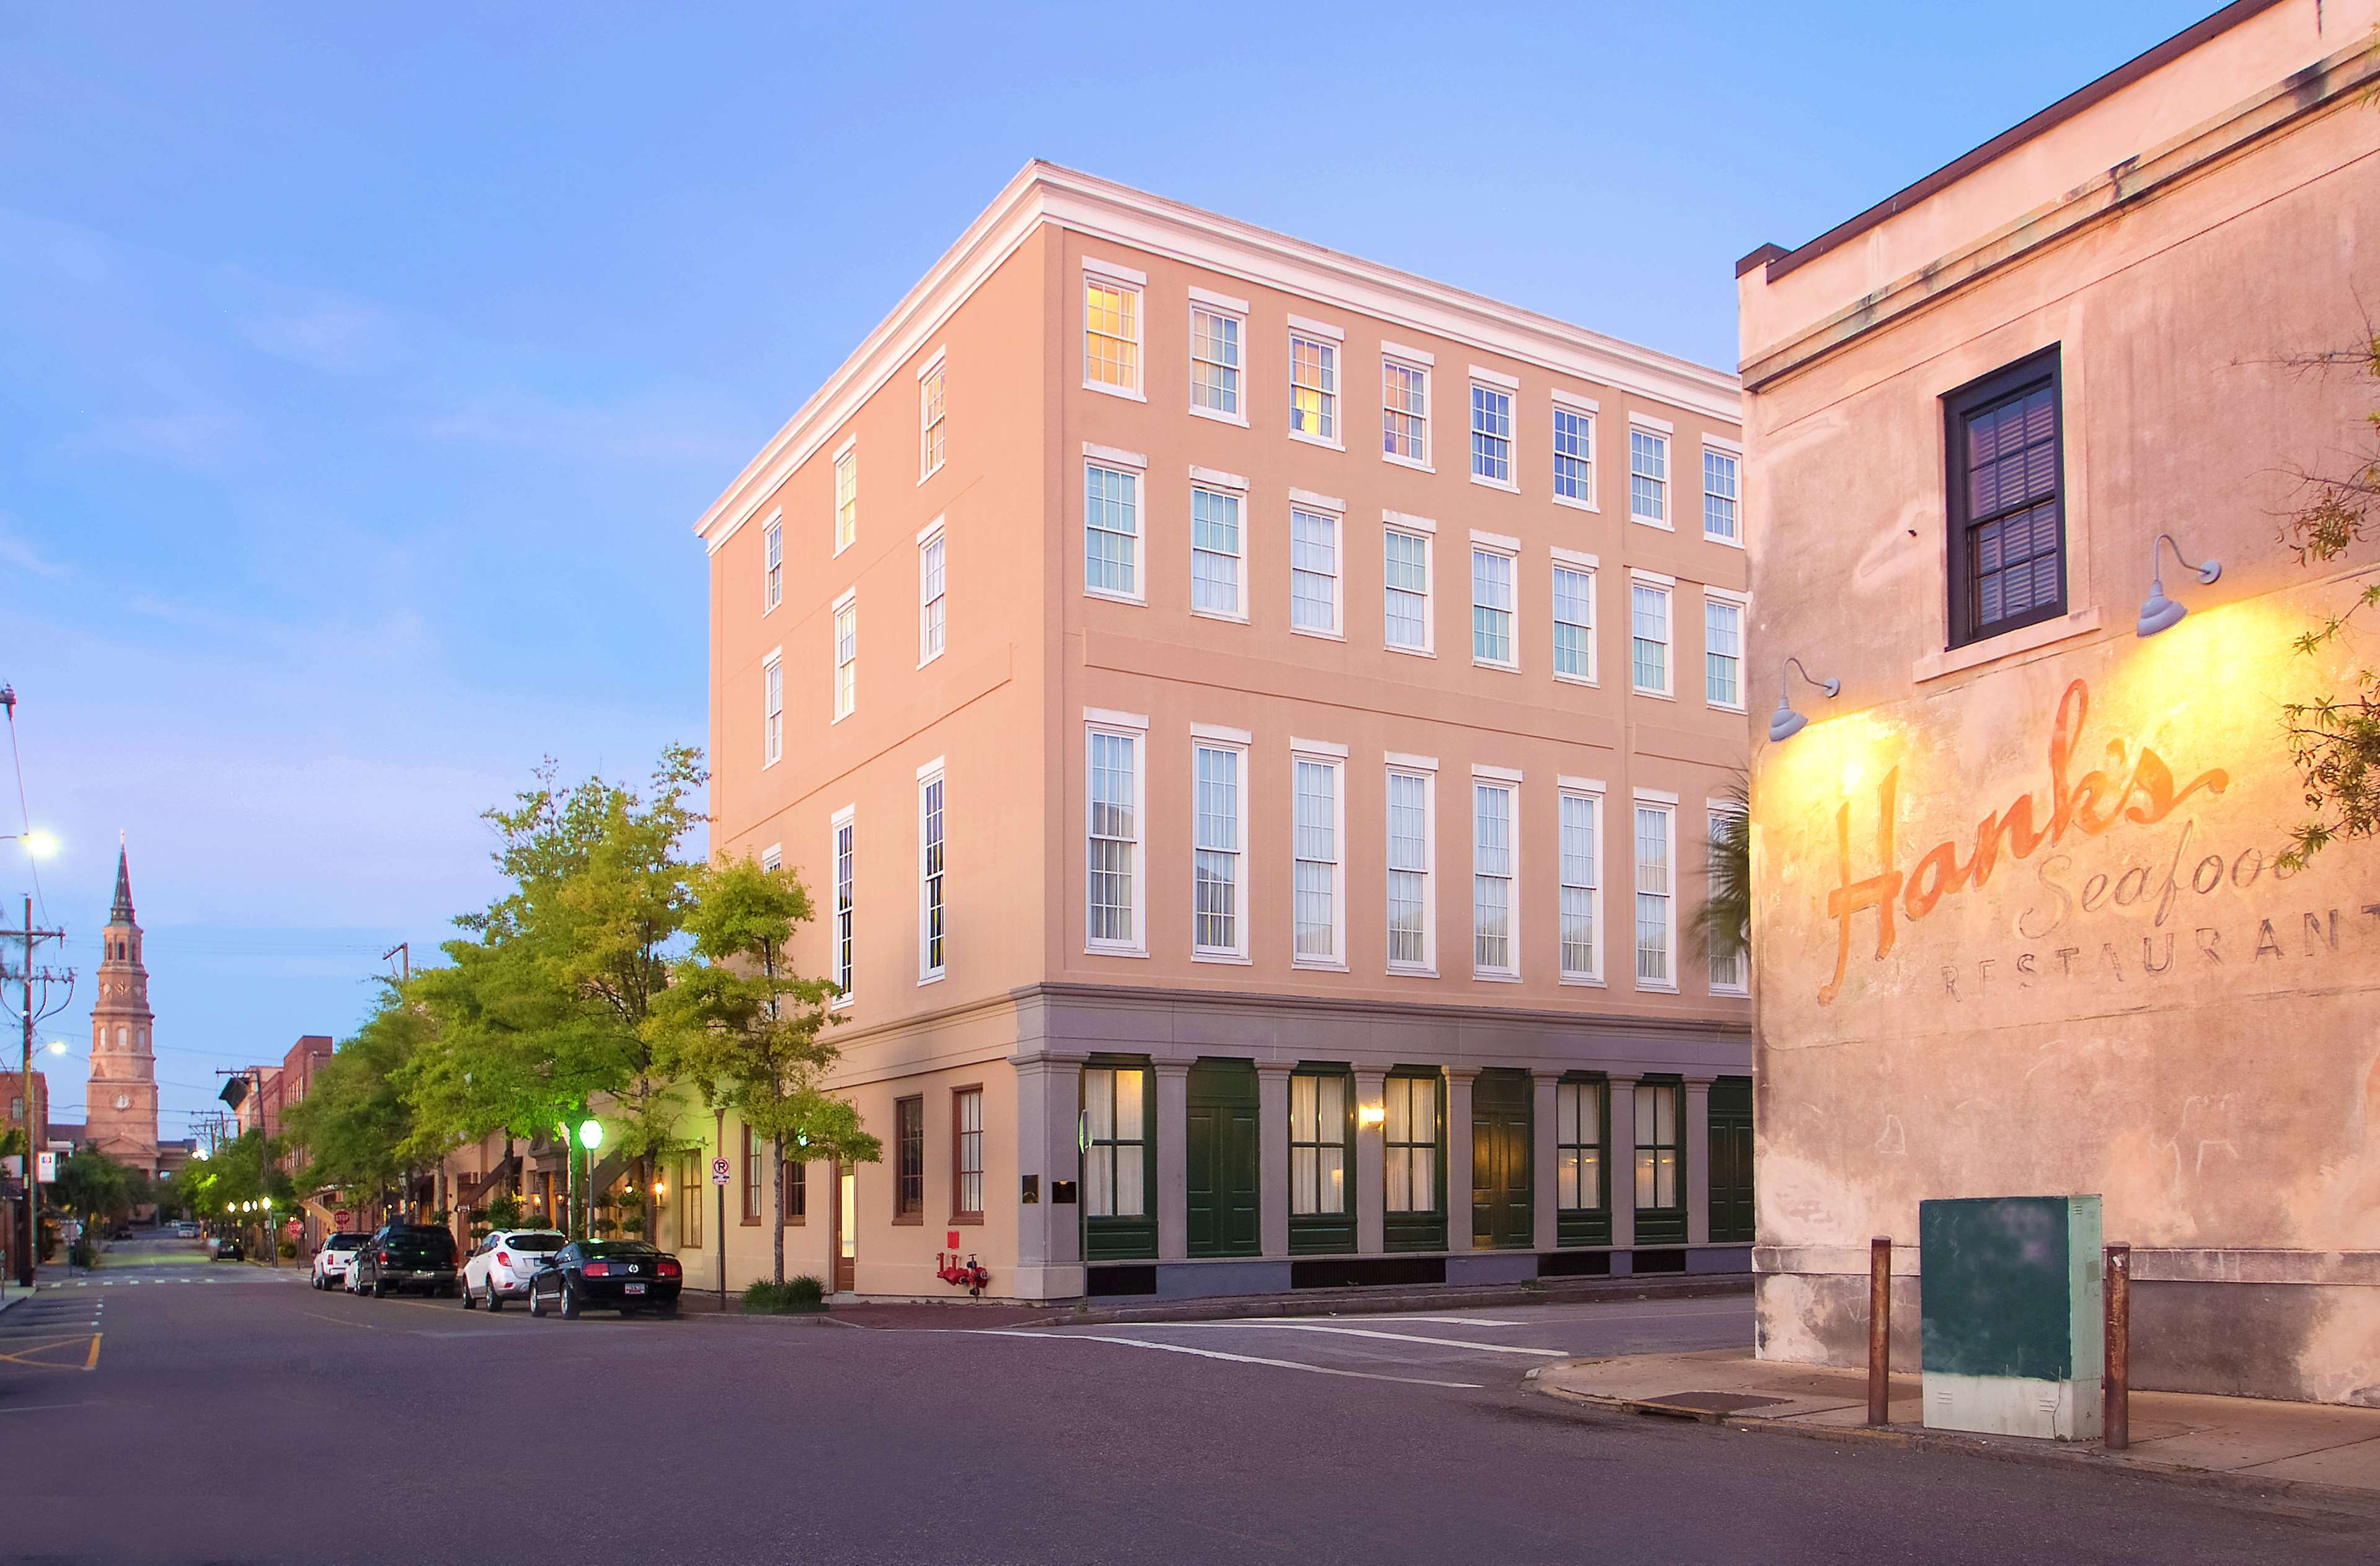 DoubleTree by Hilton Hotel & Suites Charleston - Historic District image 2